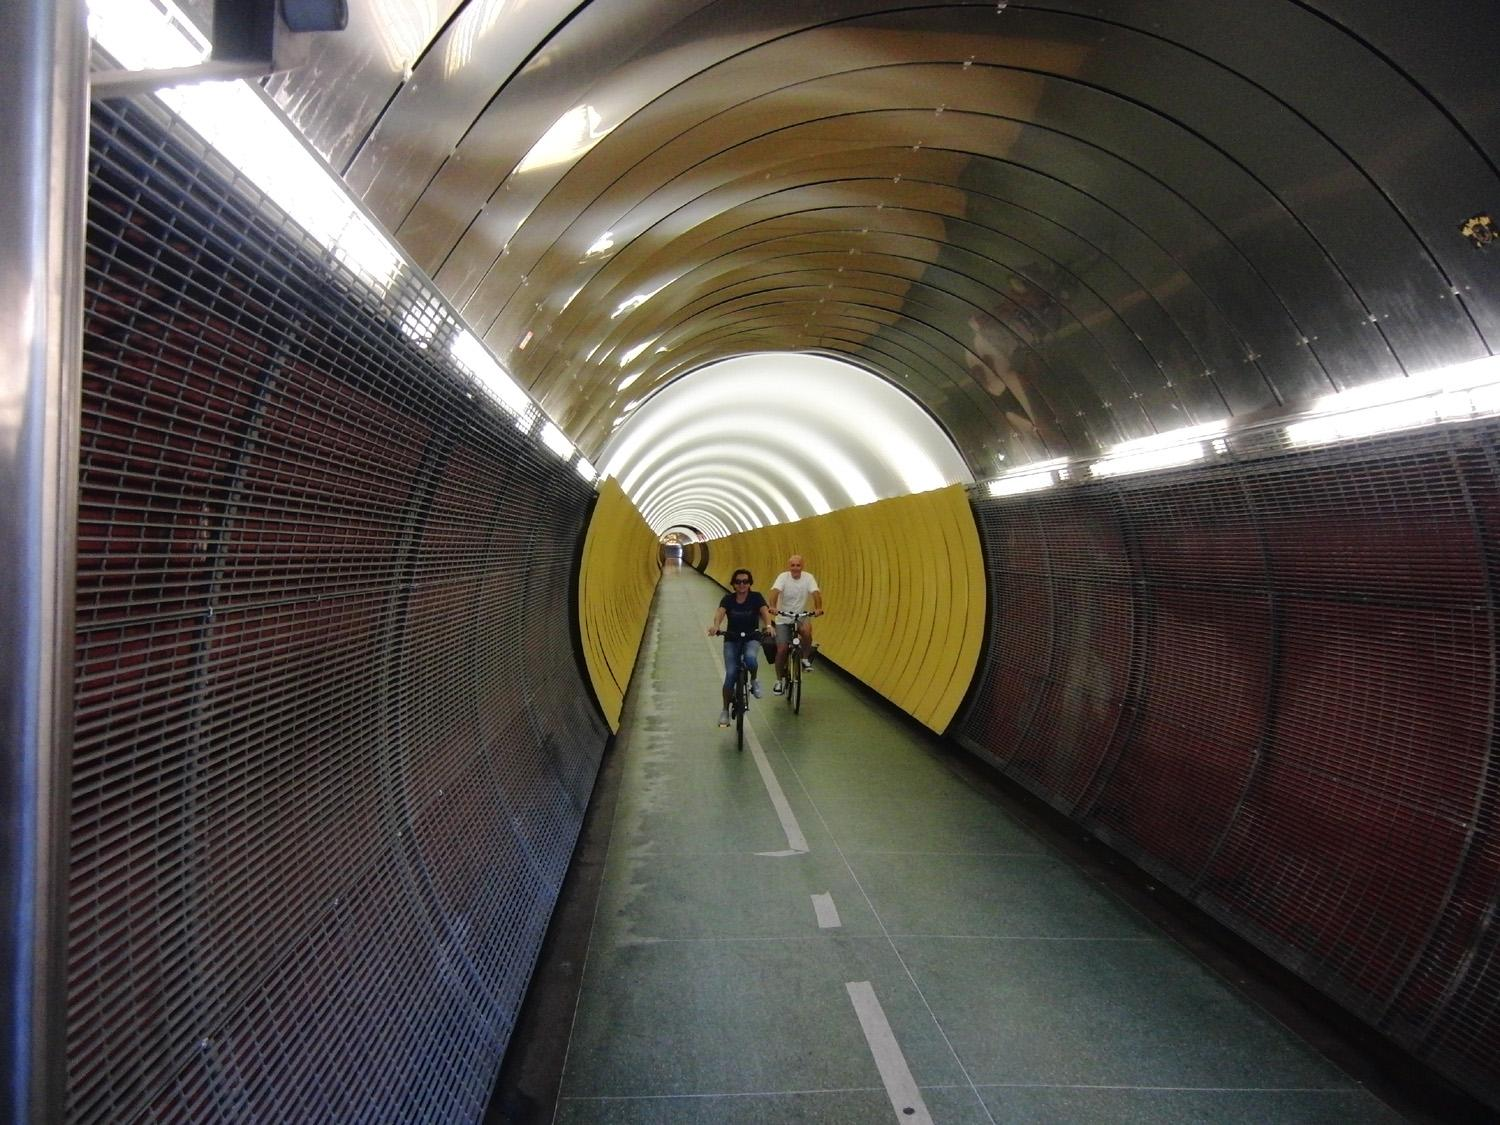 Tunnel ciclabile Palmen